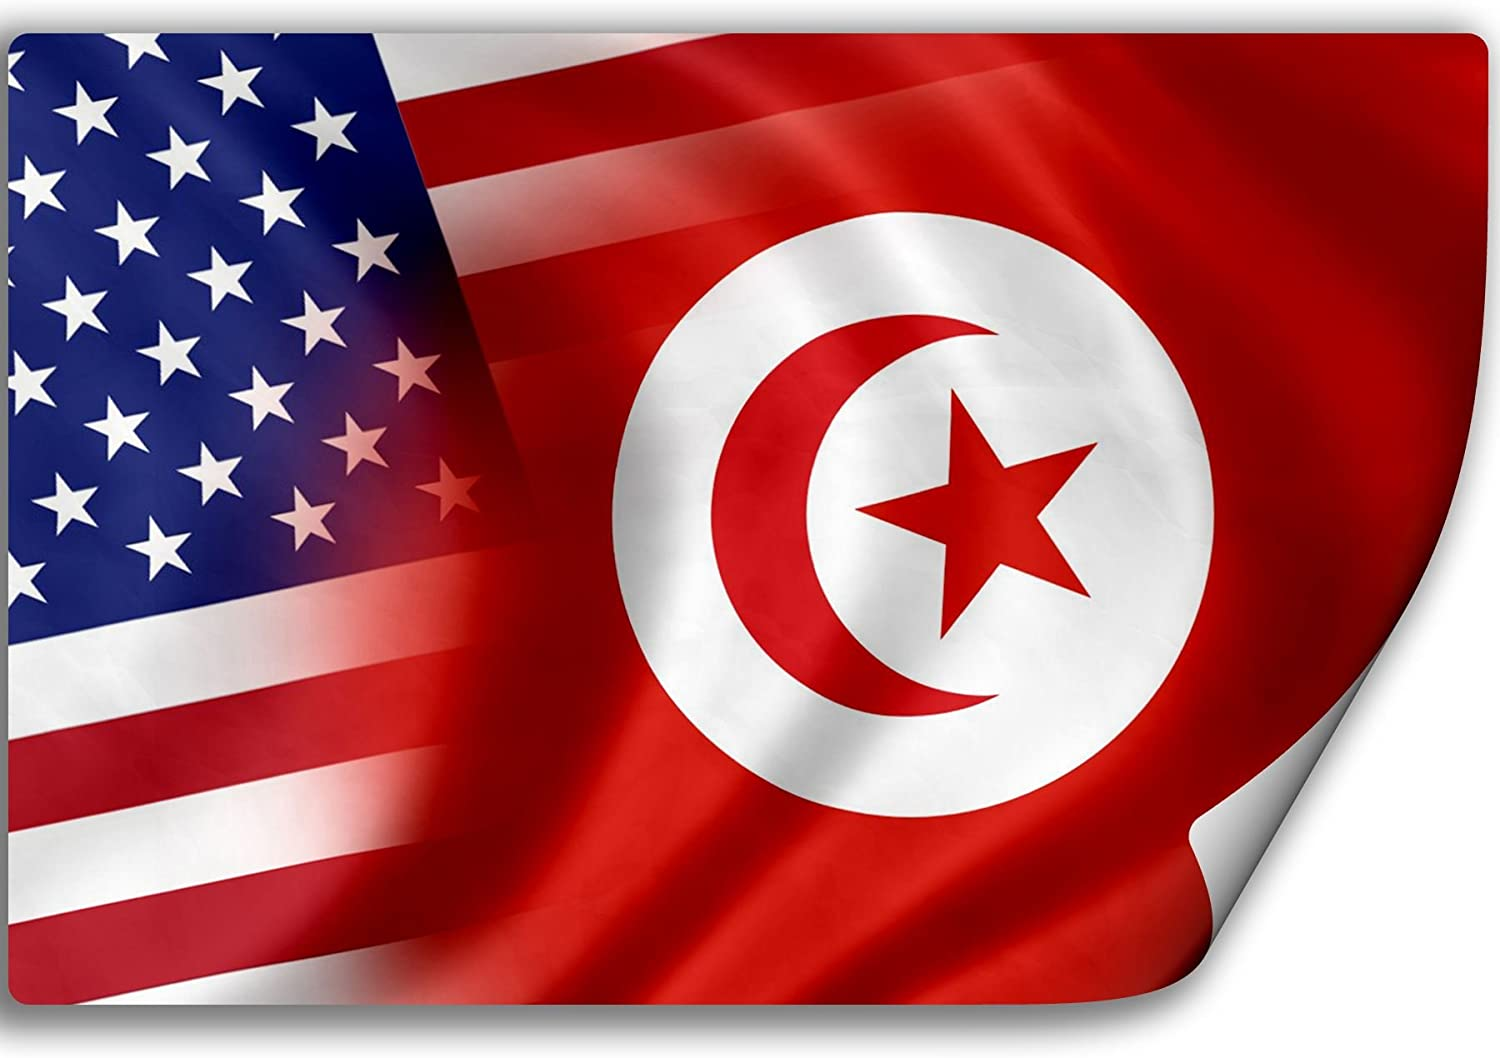 Amazon Com Expressitbest Sticker Decal With Flag Of Tunisia And Usa Tunisian Furniture Decor